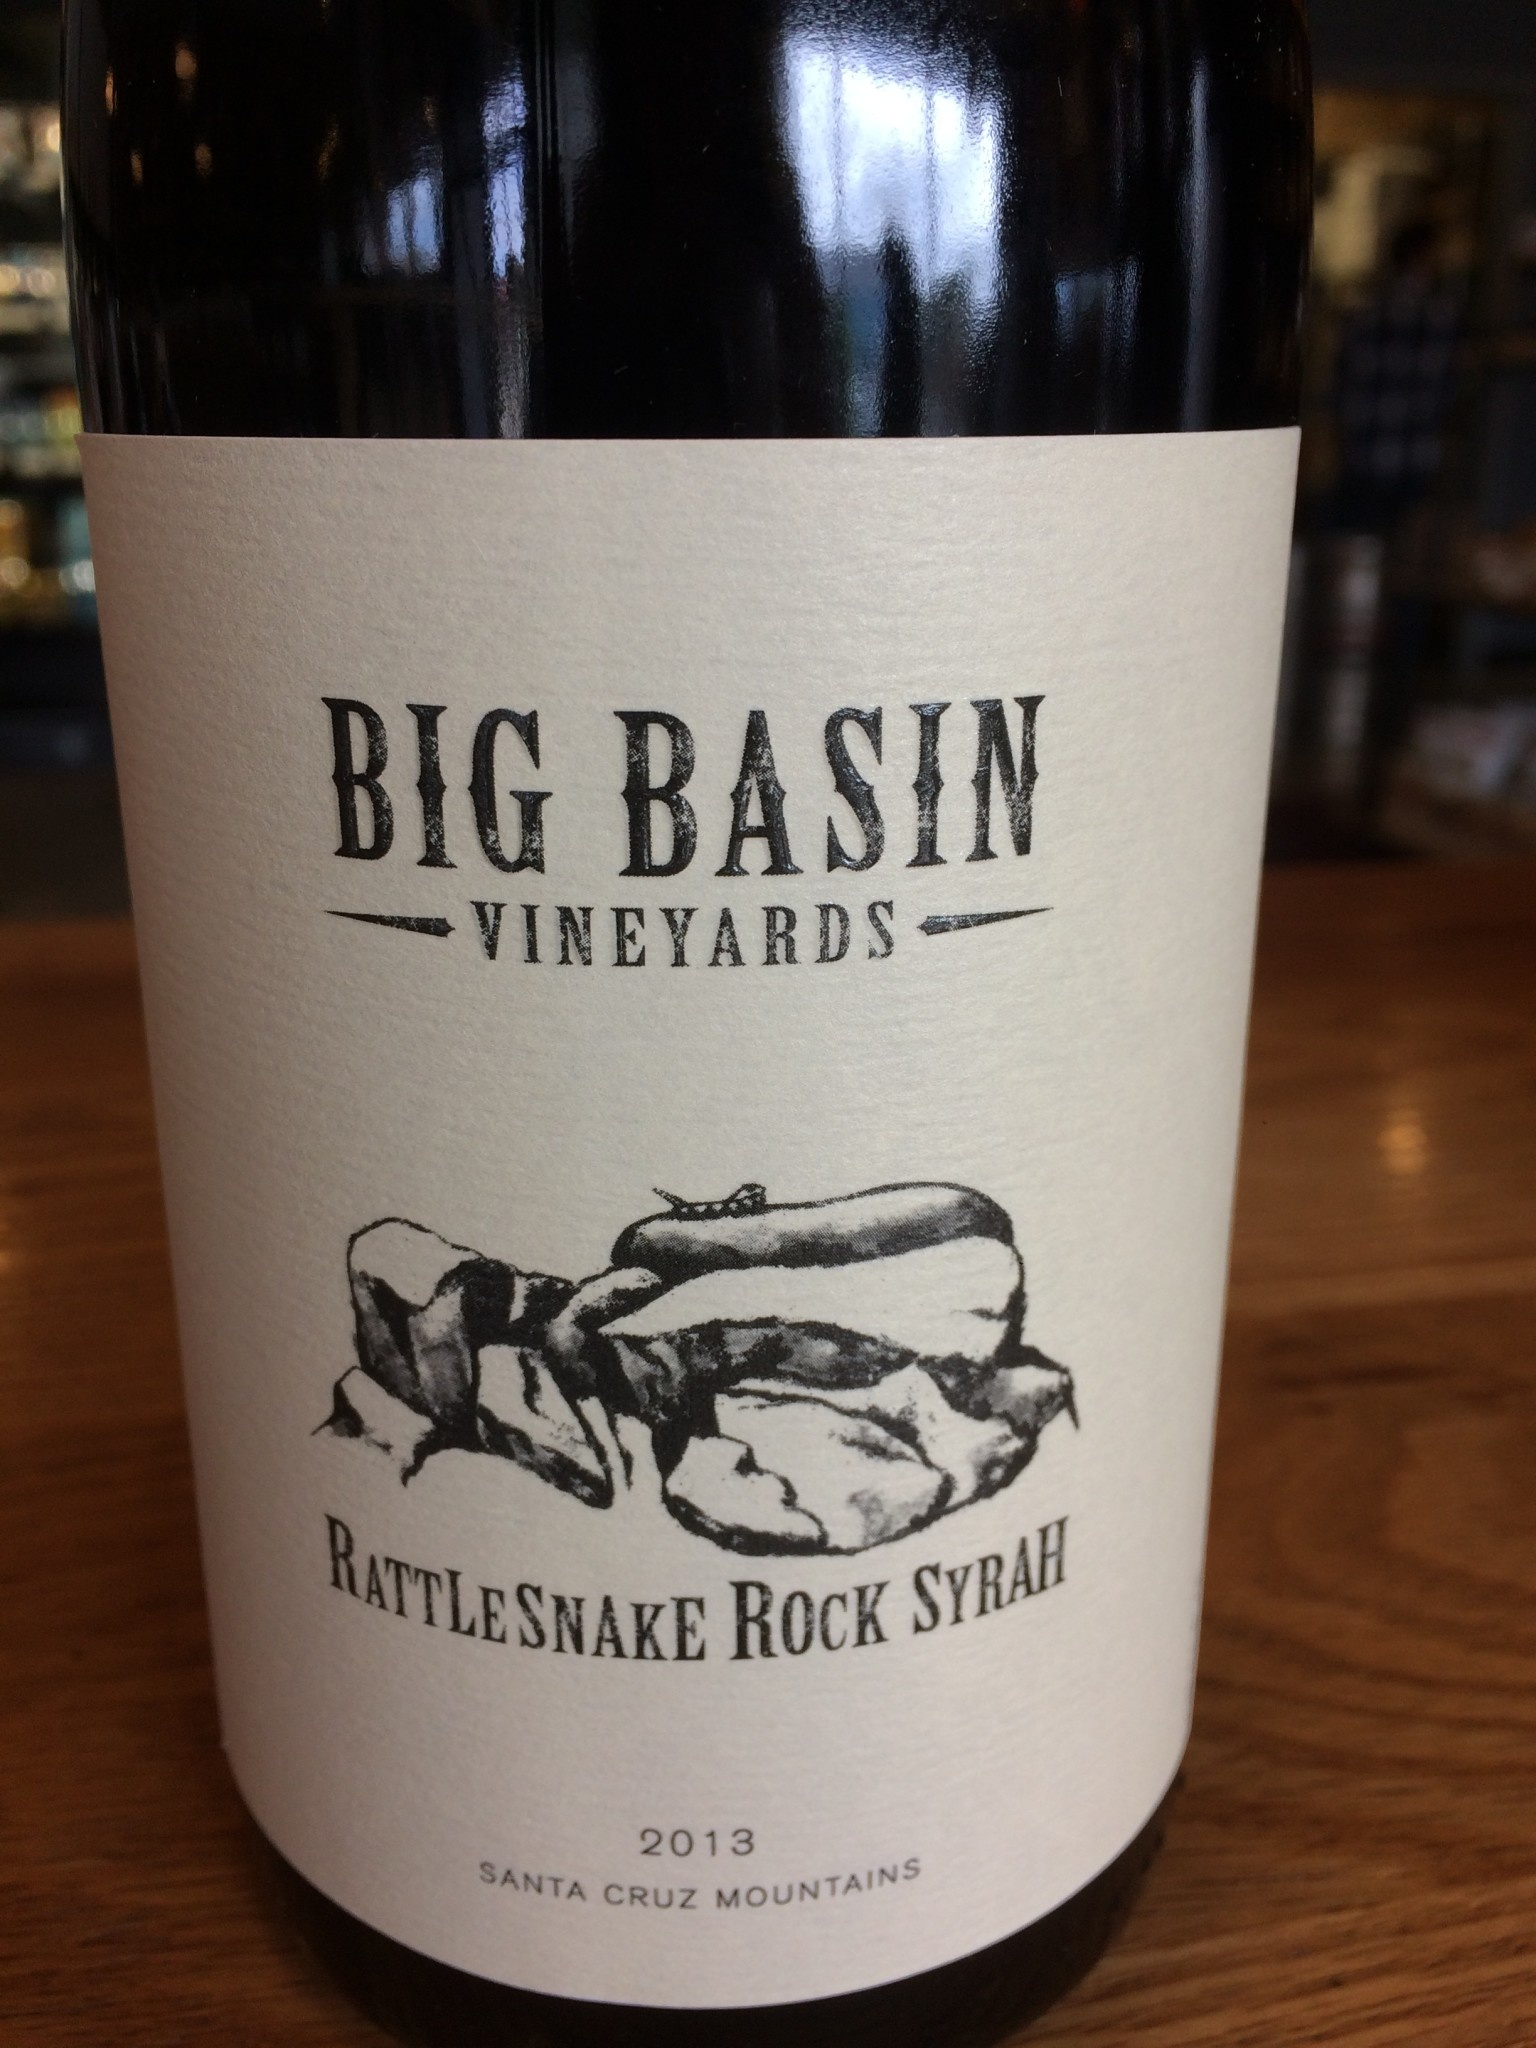 Big Basin Vineyards 2013 Big Basin Vineyards Rattlesnake Rock Estate Syrah, Santa Cruz 750ml